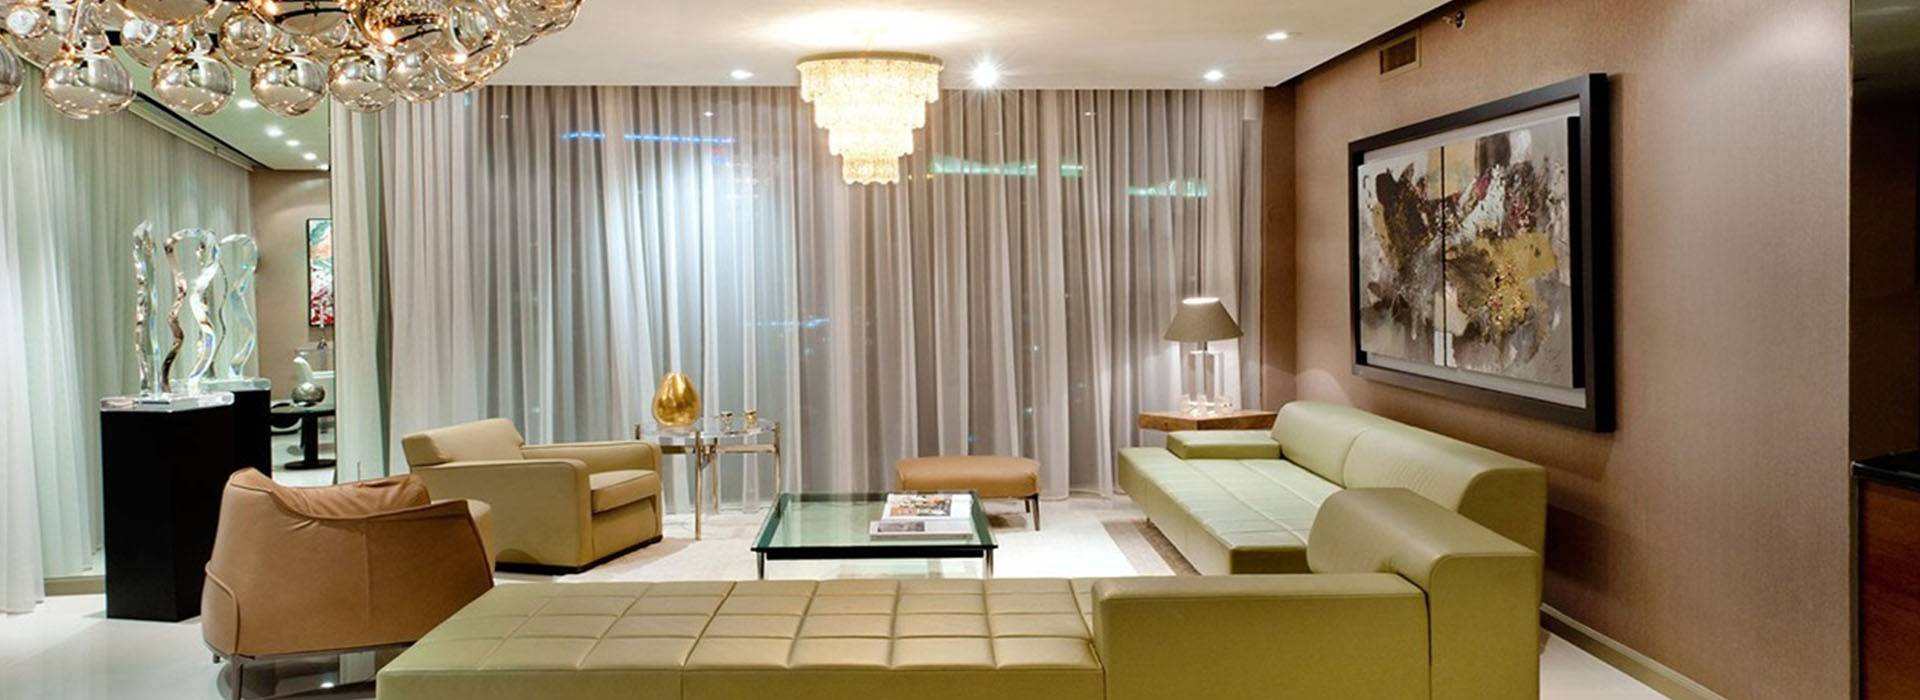 Xpo Blinds Amp Window Treatments Doral Florida Xpo Blinds